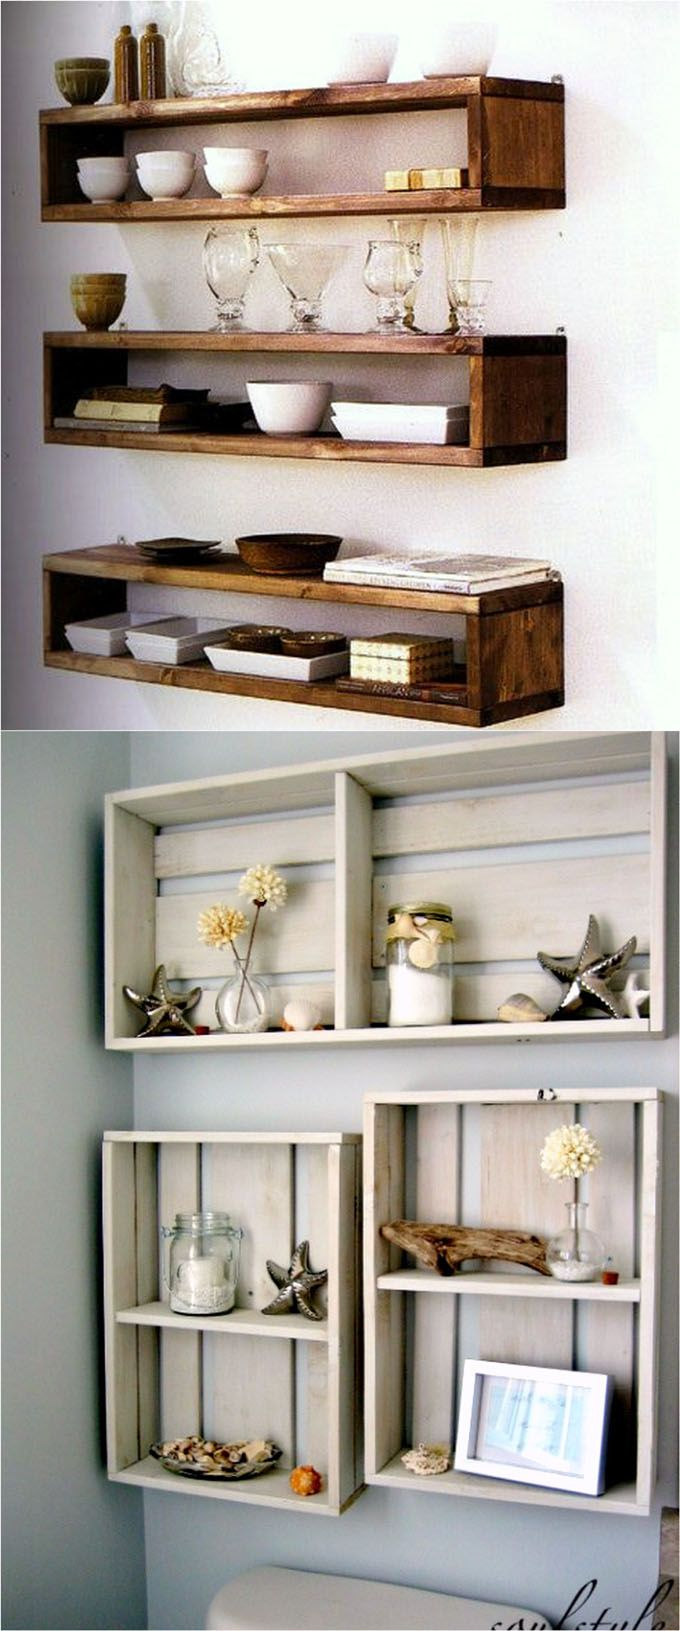 Picture Wall Ideas With Shelves